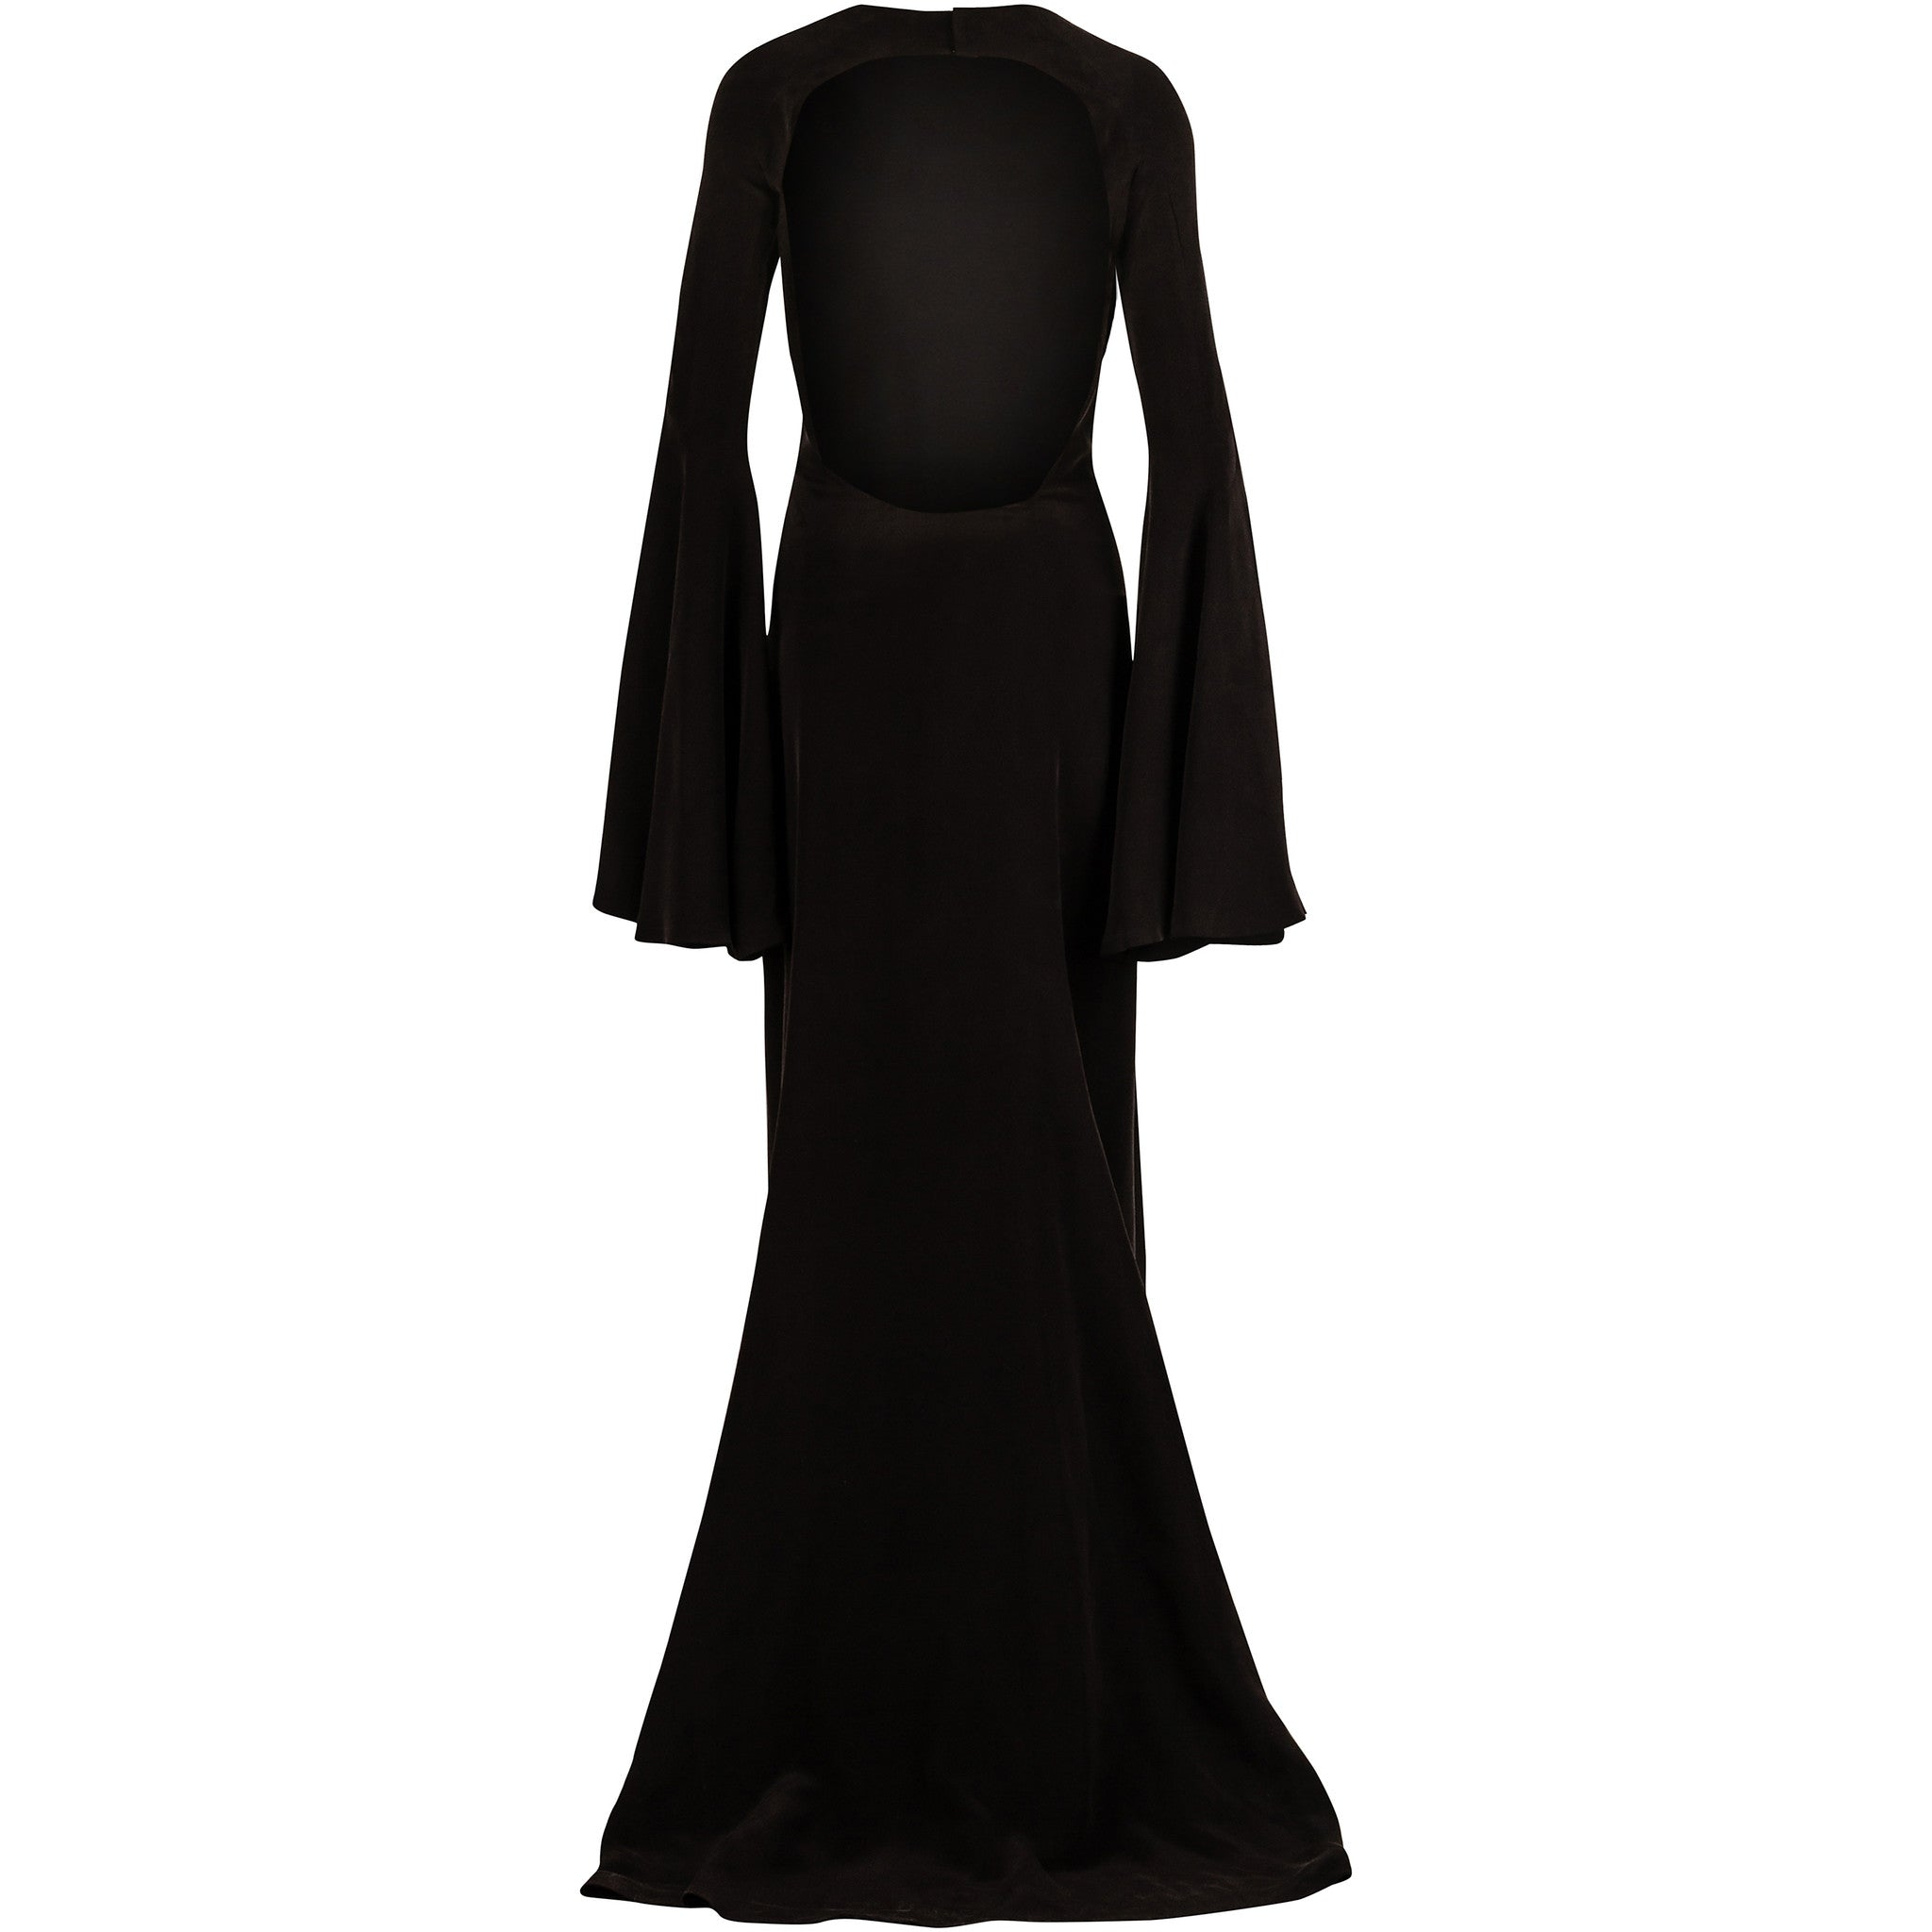 Black Open-back silk gown with flared sleeves and slit